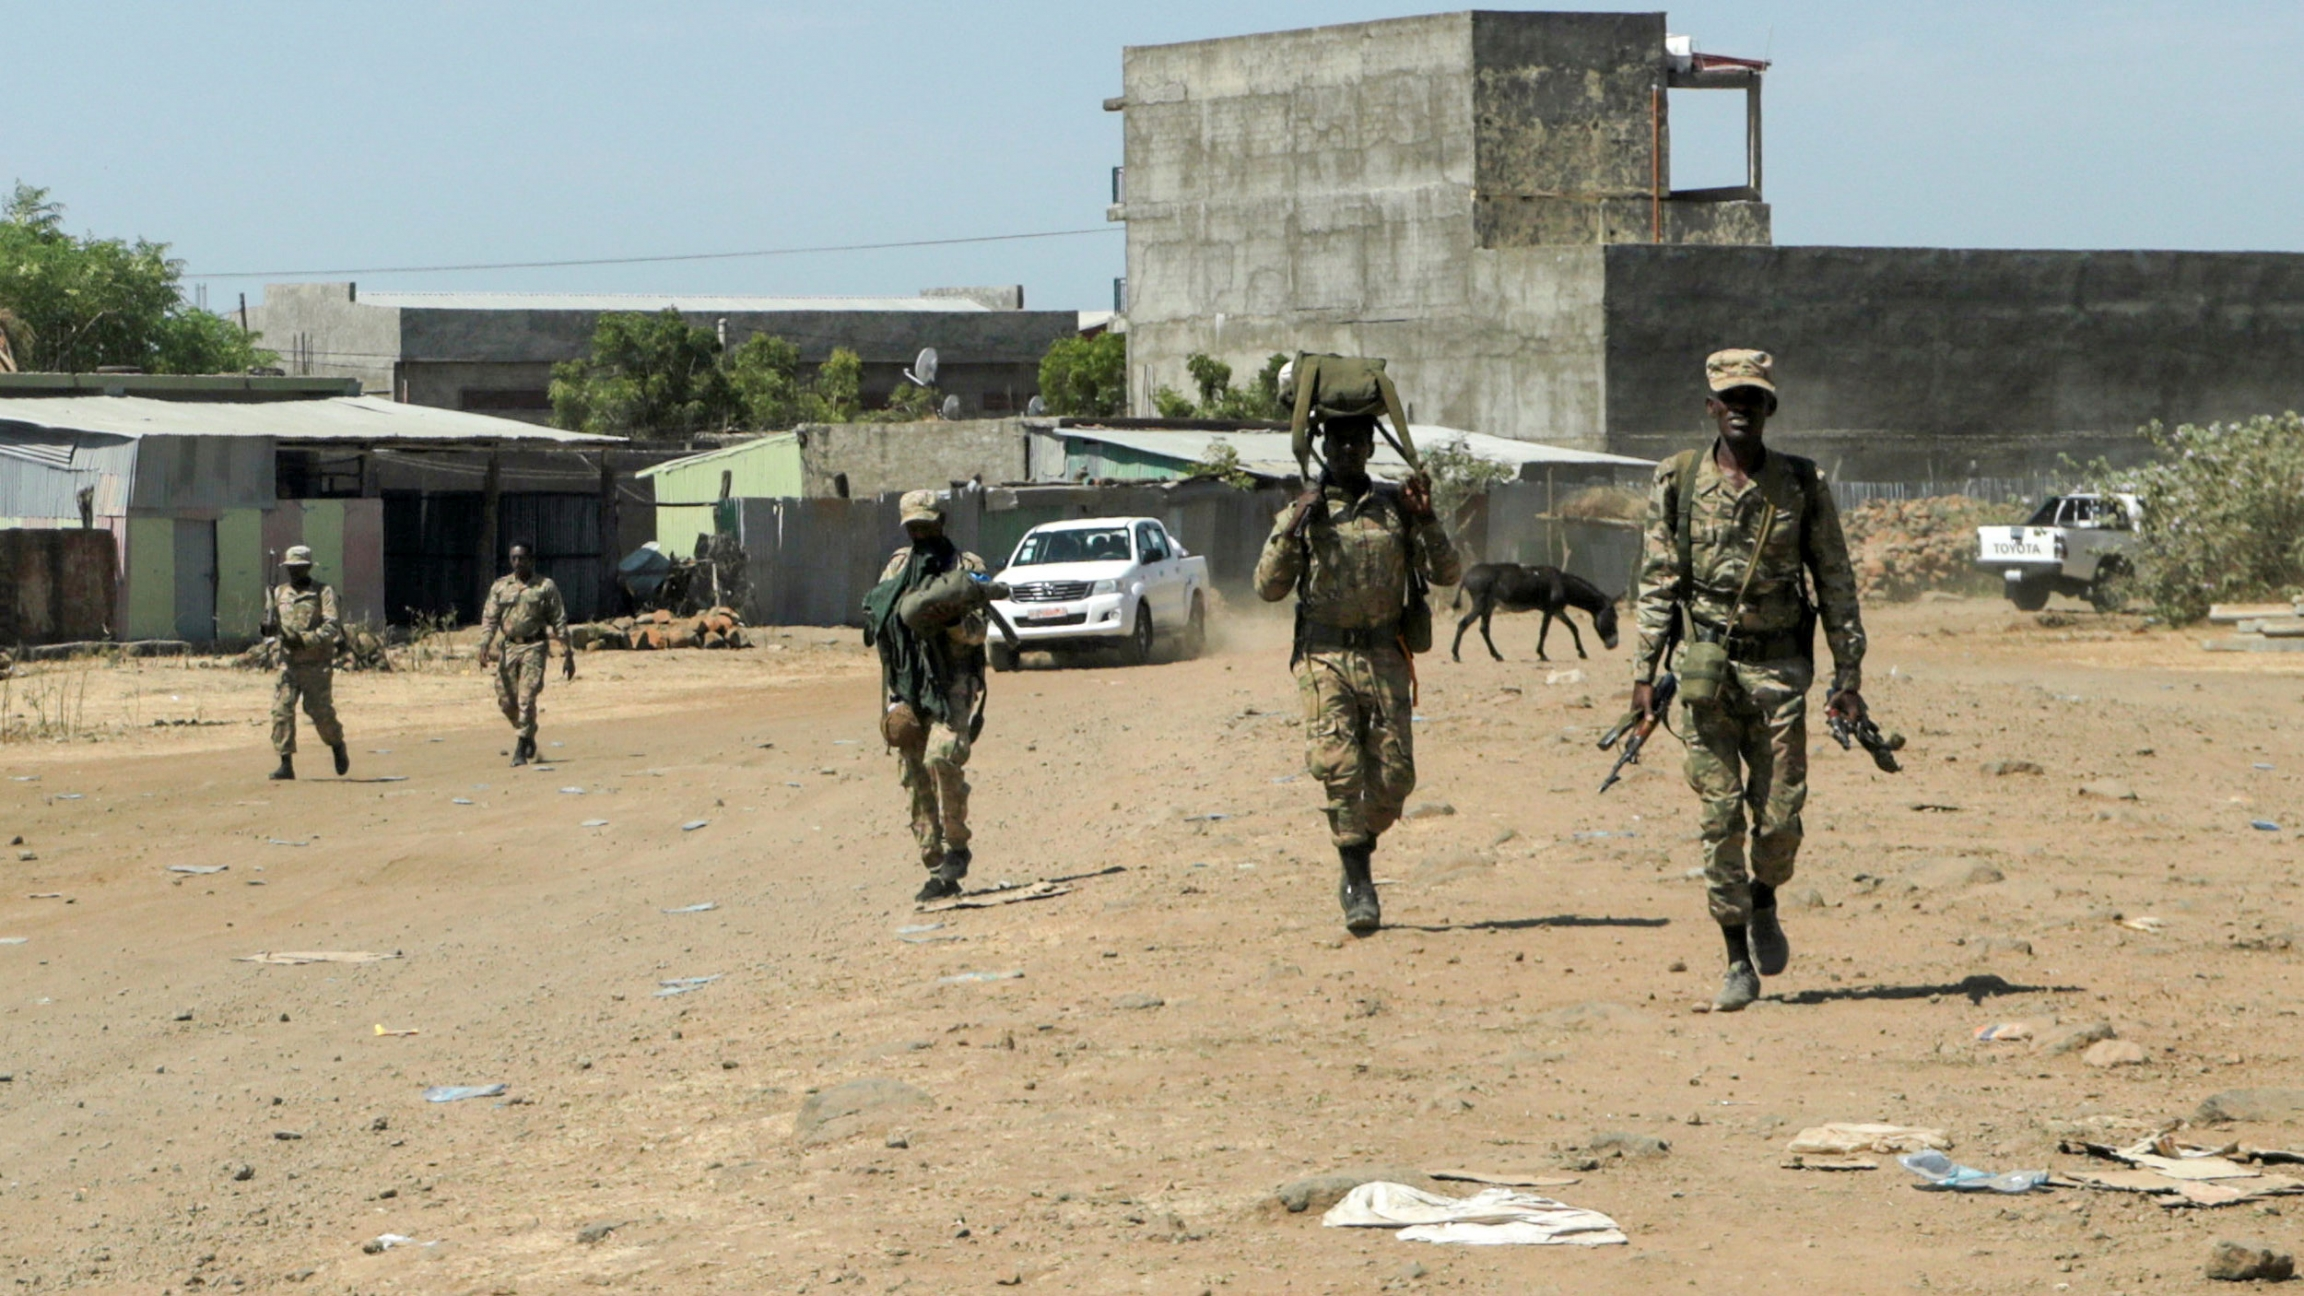 A small group of soldiers are shown walking and carrying weapons with a large cement structure in the distance.